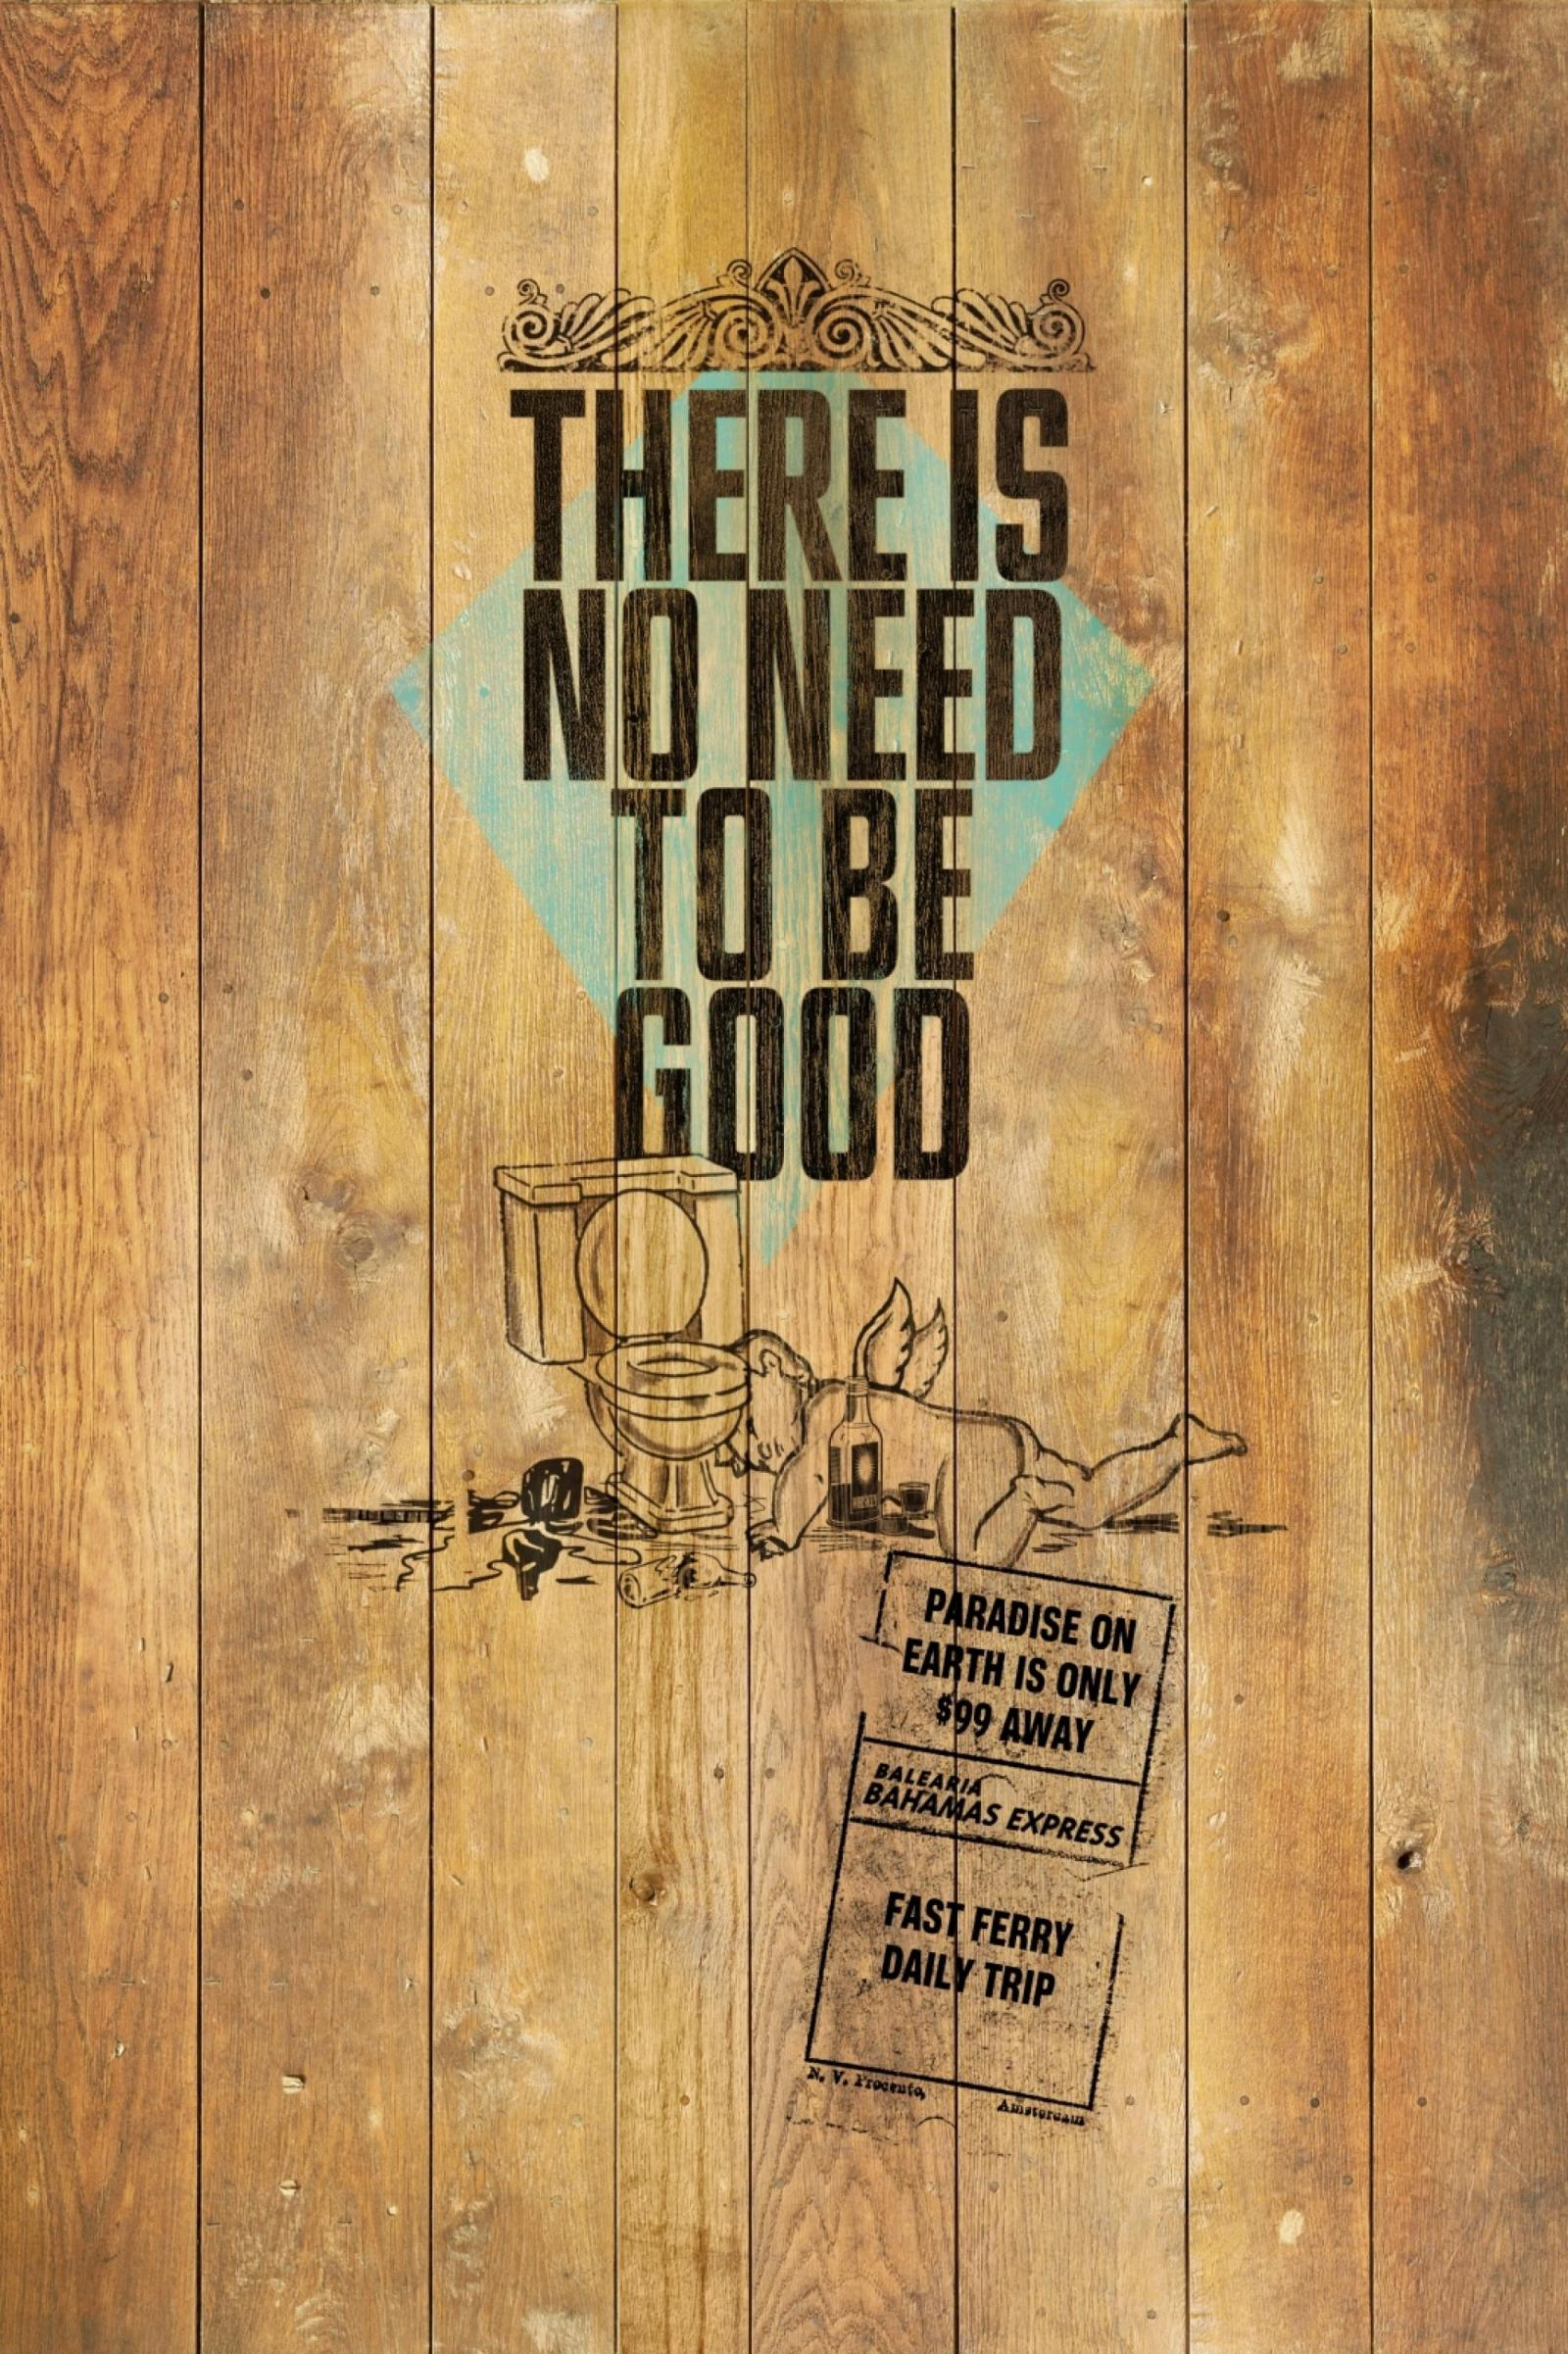 balearia-bahamas-express-there-is-no-need-to-be-good-1600-71074.jpg